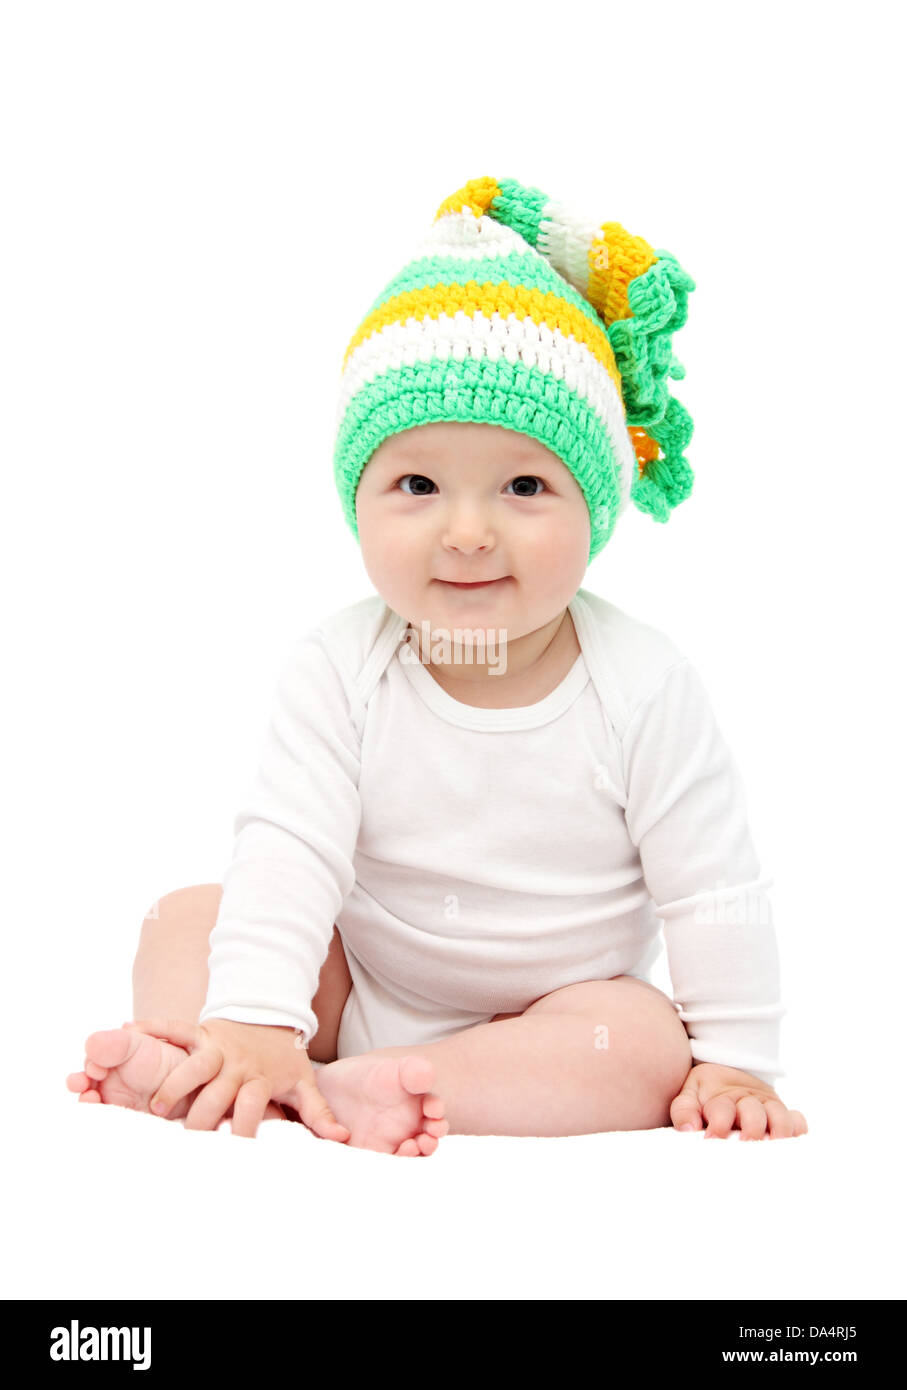 smiling baby sitting on bed - Stock Image